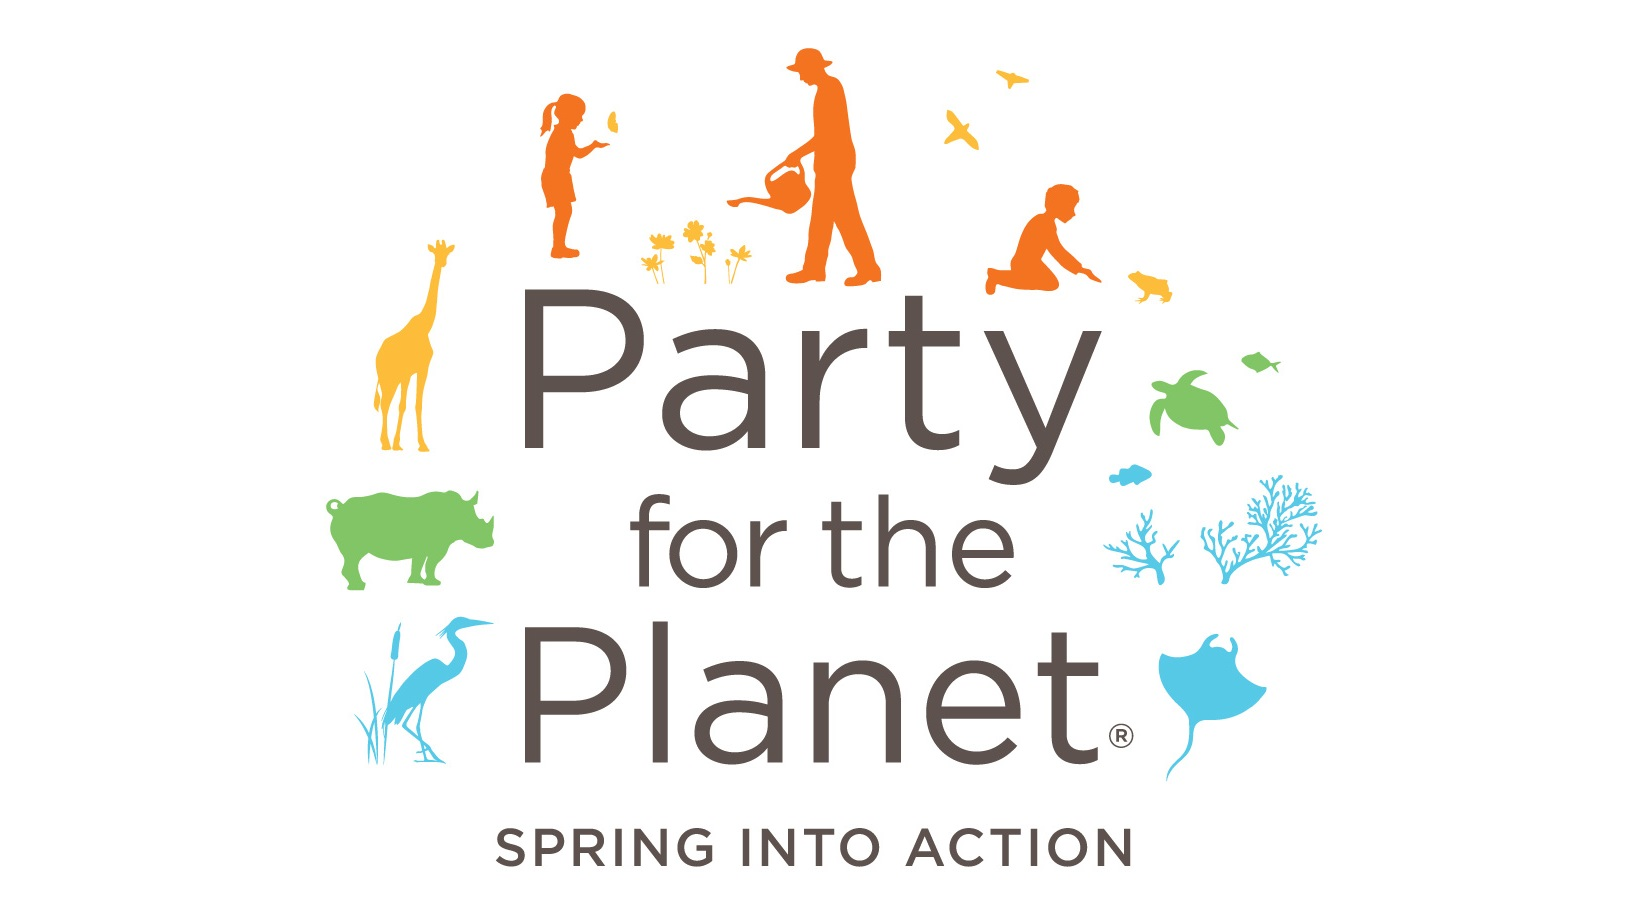 Party for the Planet 7 Day Challenge image